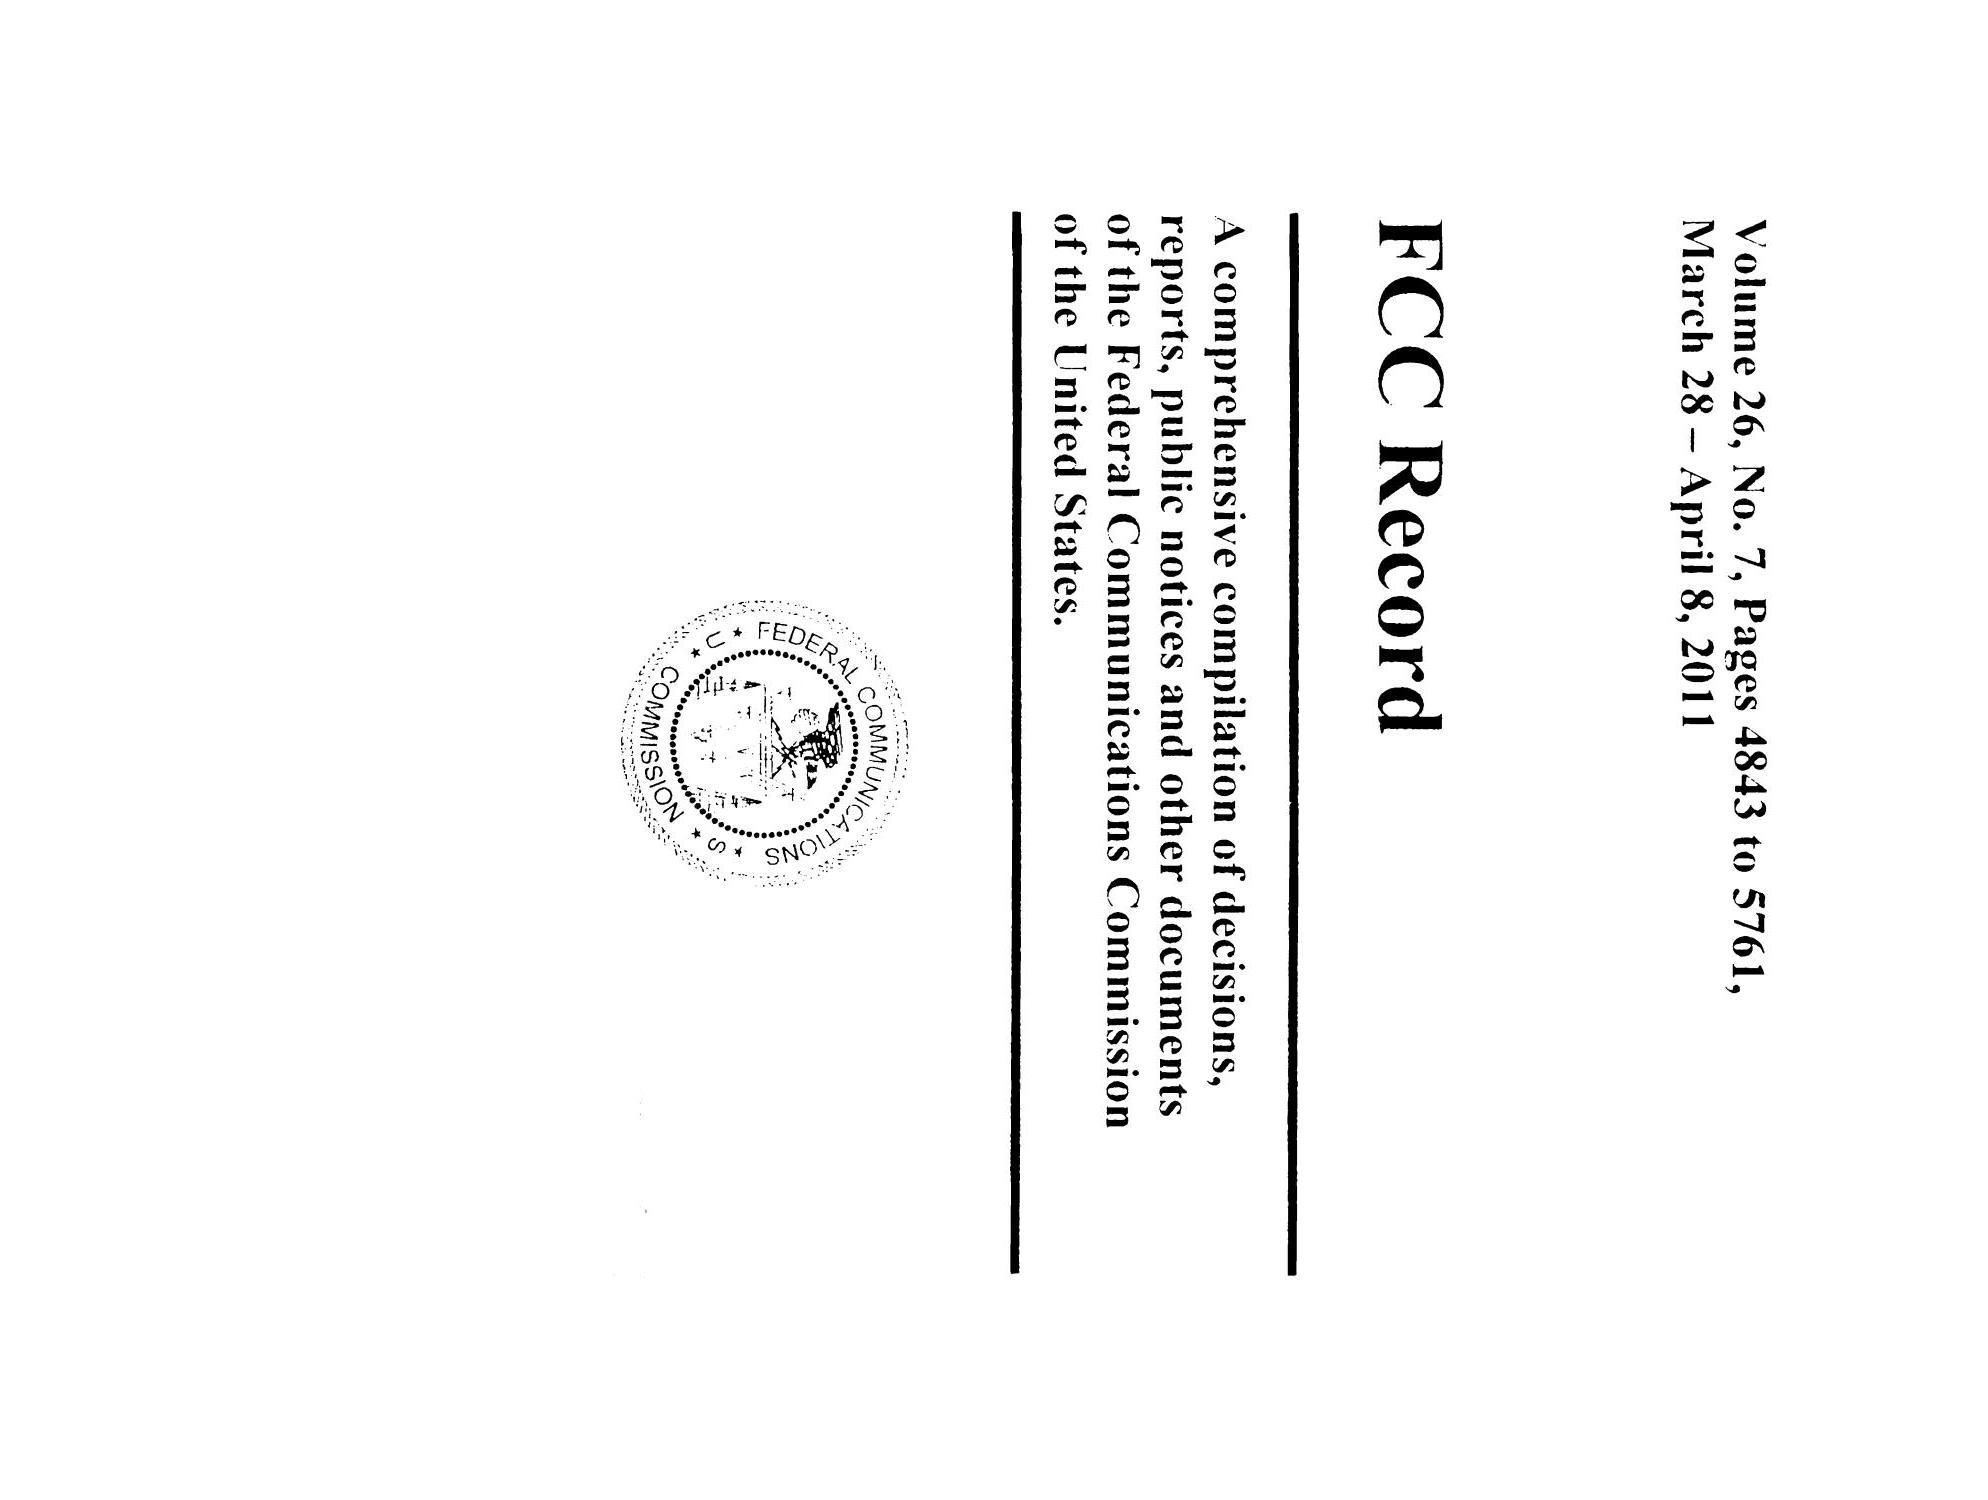 FCC Record, Volume 26, No. 7, Pages 4843 to 5761, March 28 - April 08, 2011                                                                                                      Title Page